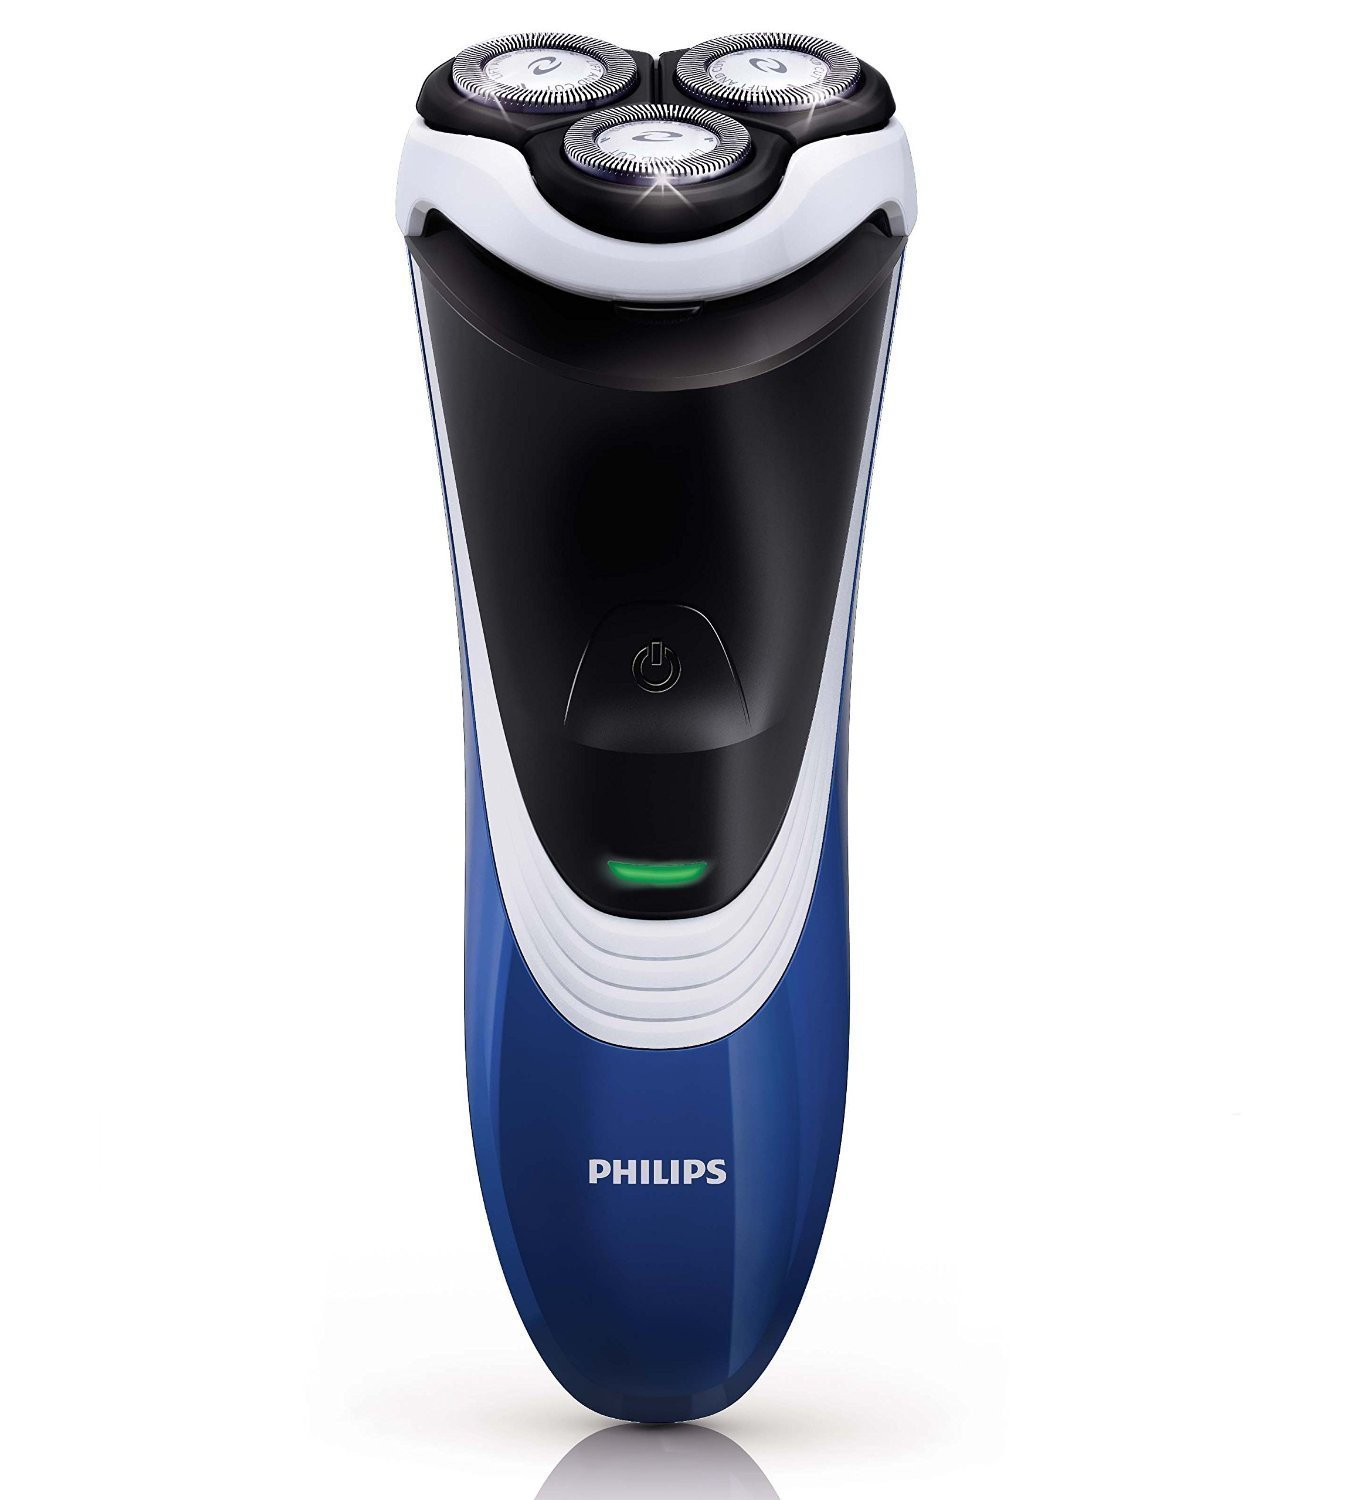 Philips Norelco Cordless/Corded Electric Razor, with CloseCut Flexing and Floating Heads and Durable Self-Sharpening Blades, with Convenient Pop-Up Trimmer, Includes Charge and Low Battery Indicator